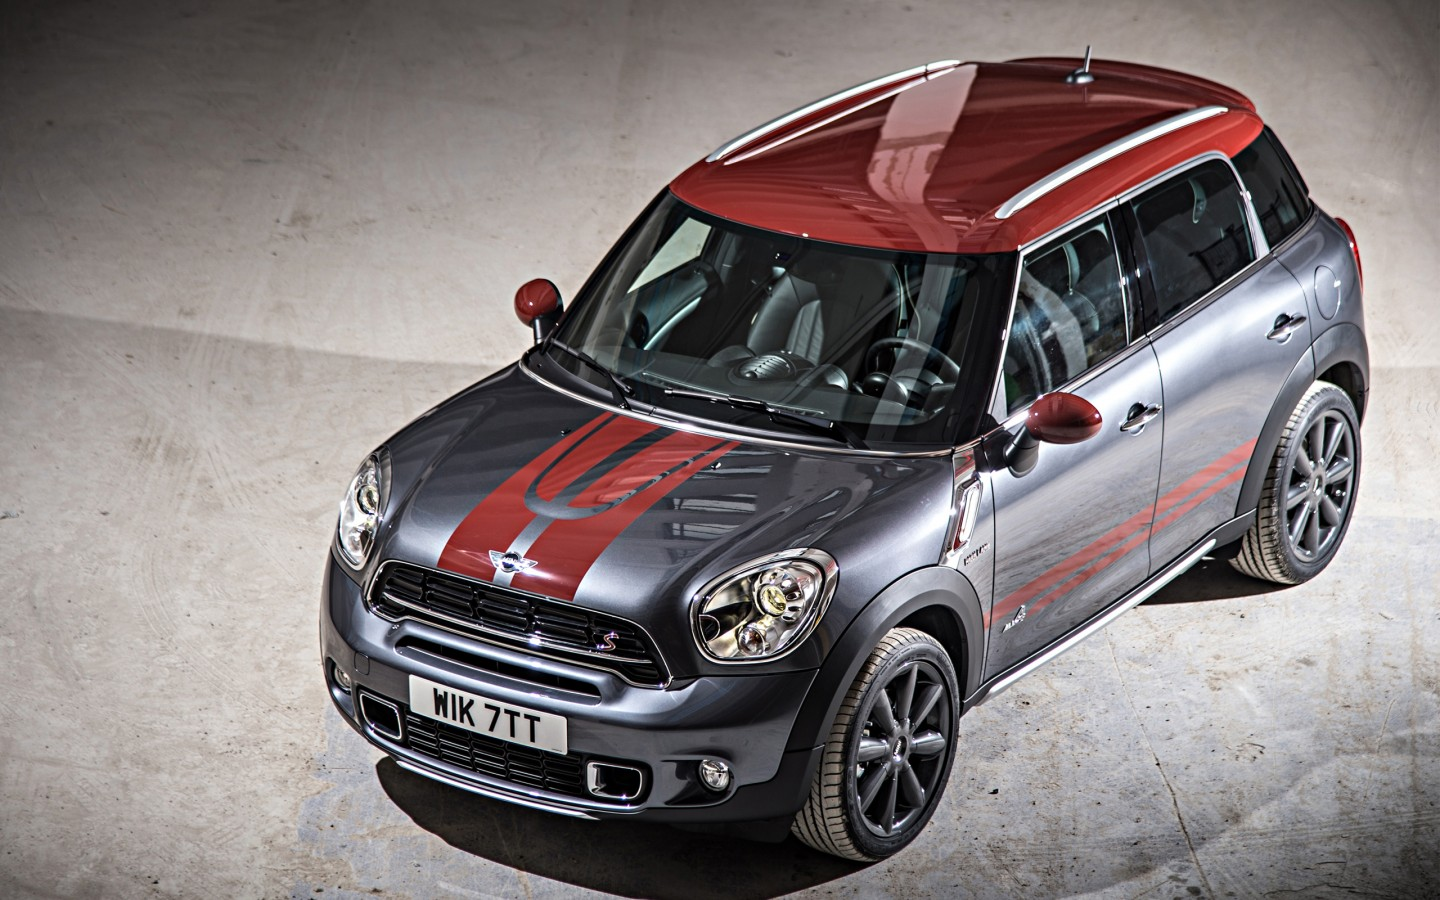 2015 Mini Cooper Countryman Wallpaper Hd Car Wallpapers